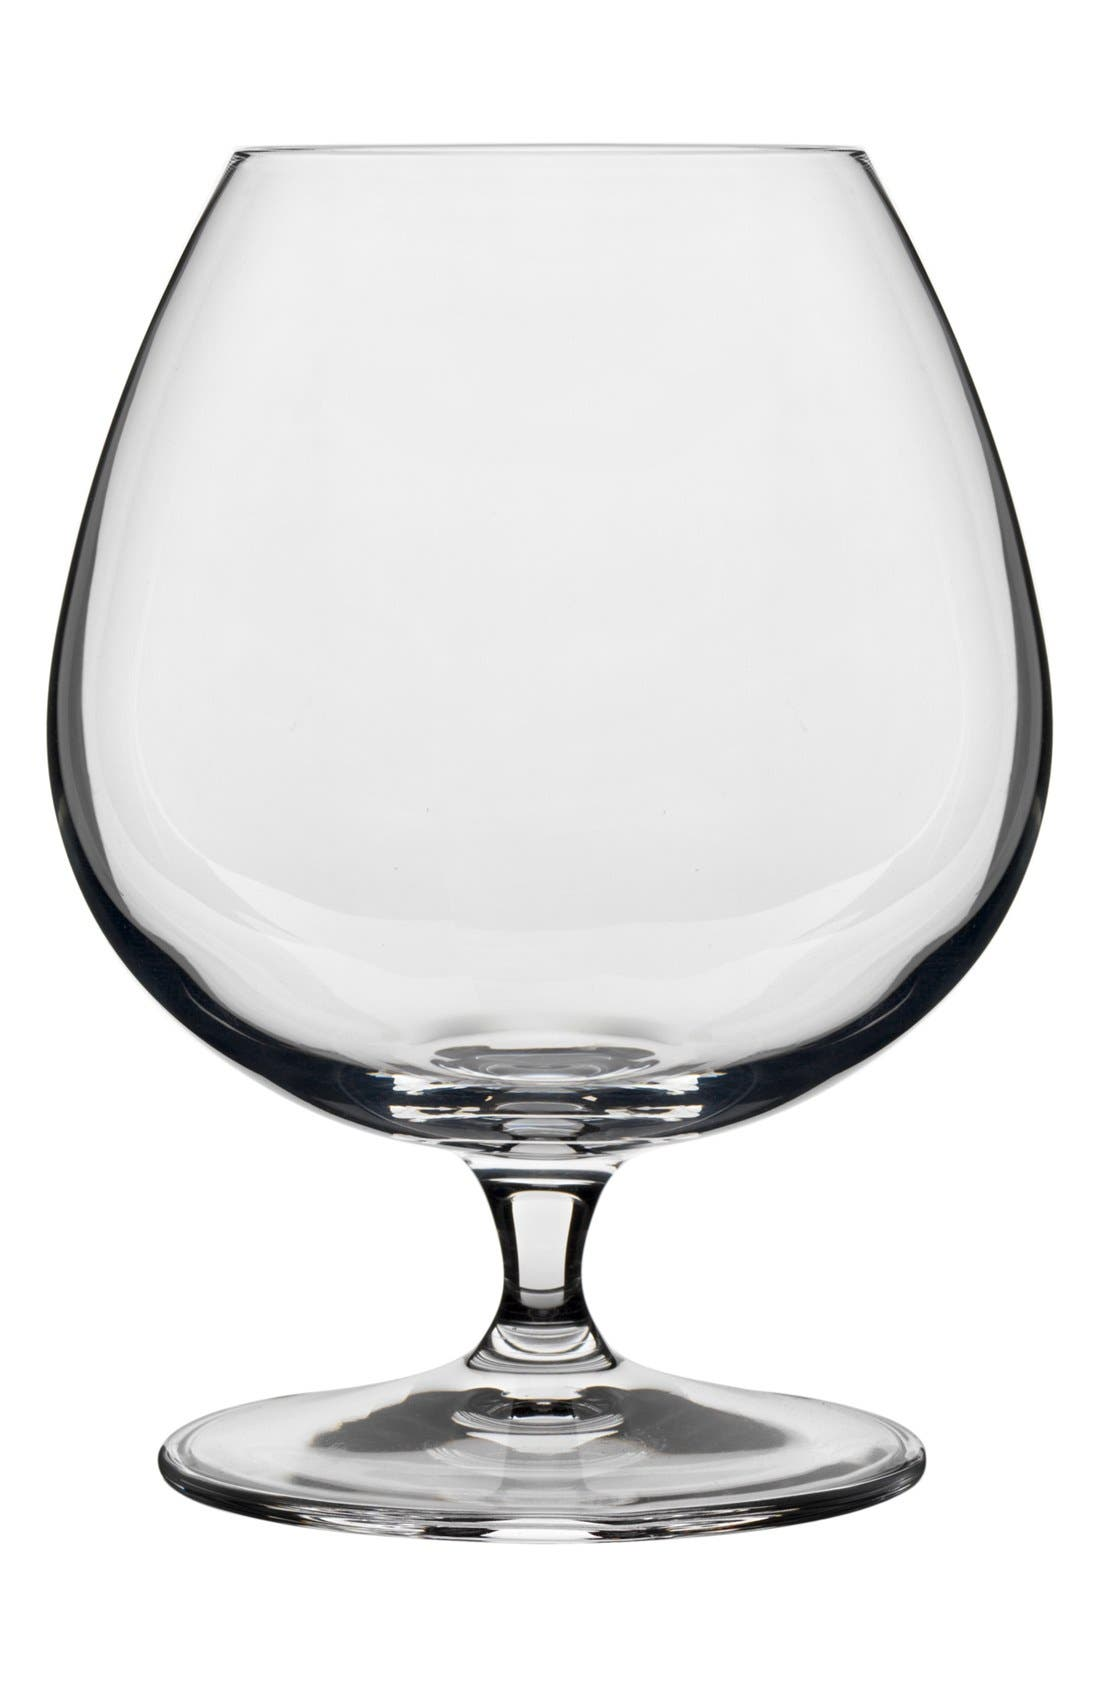 Alternate Image 1 Selected - Luigi Bormioli 'Crescendo' Cognac Glasses (Set of 4)